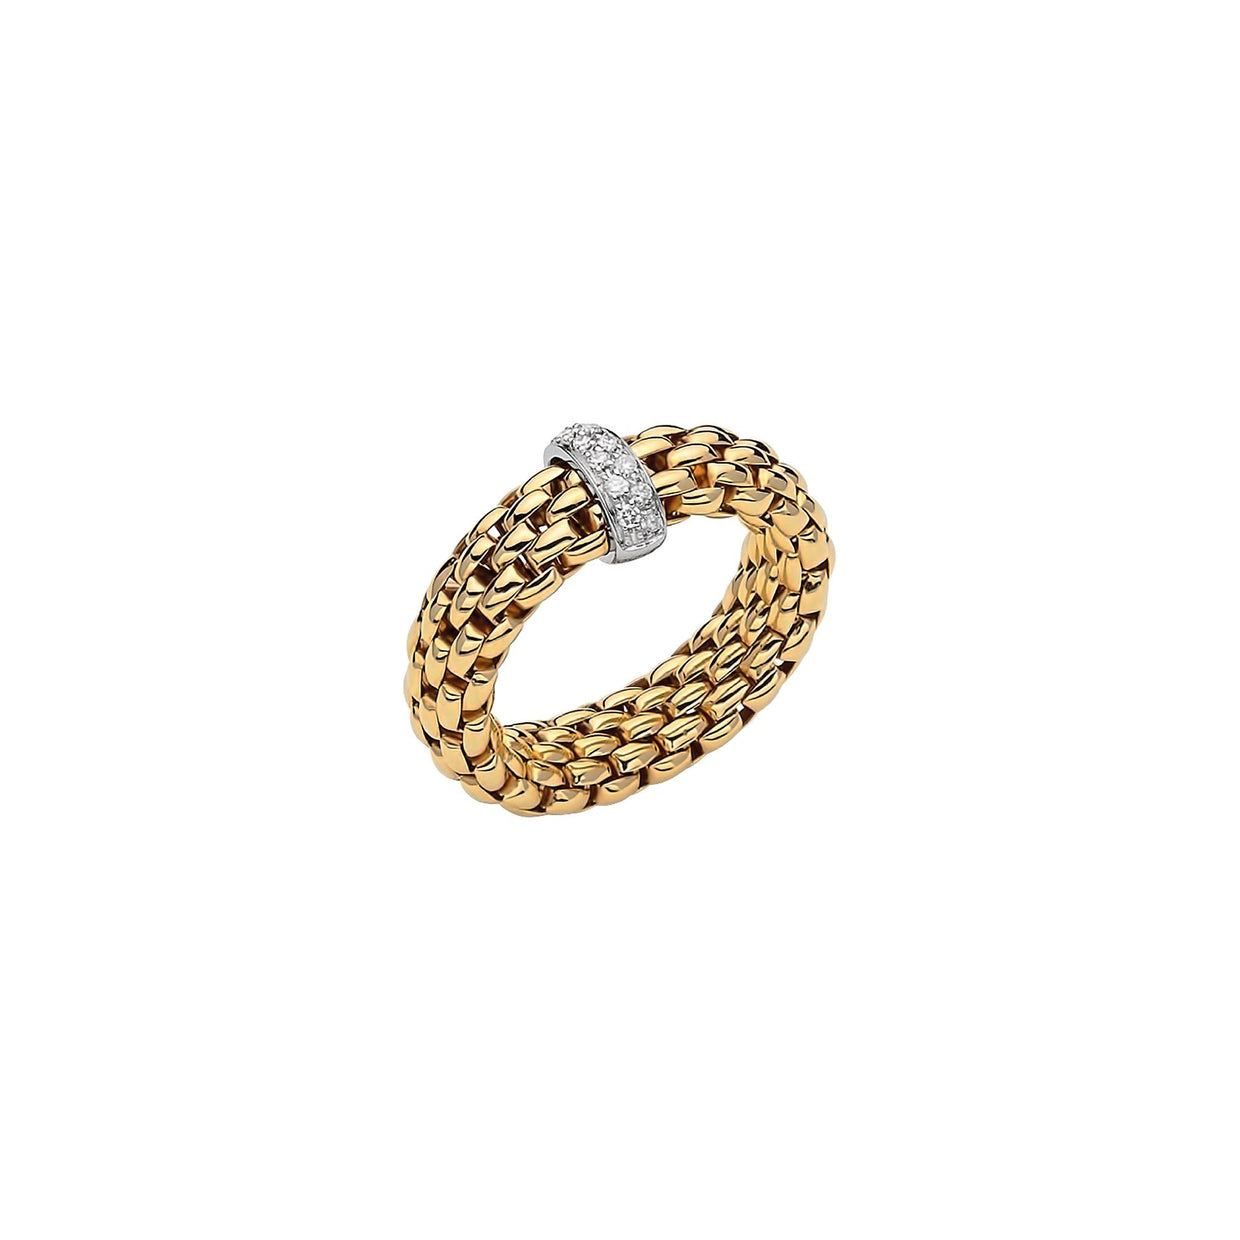 FOPE Vendome Ring Set in 18ct Yellow Gold-Hamilton & Inches